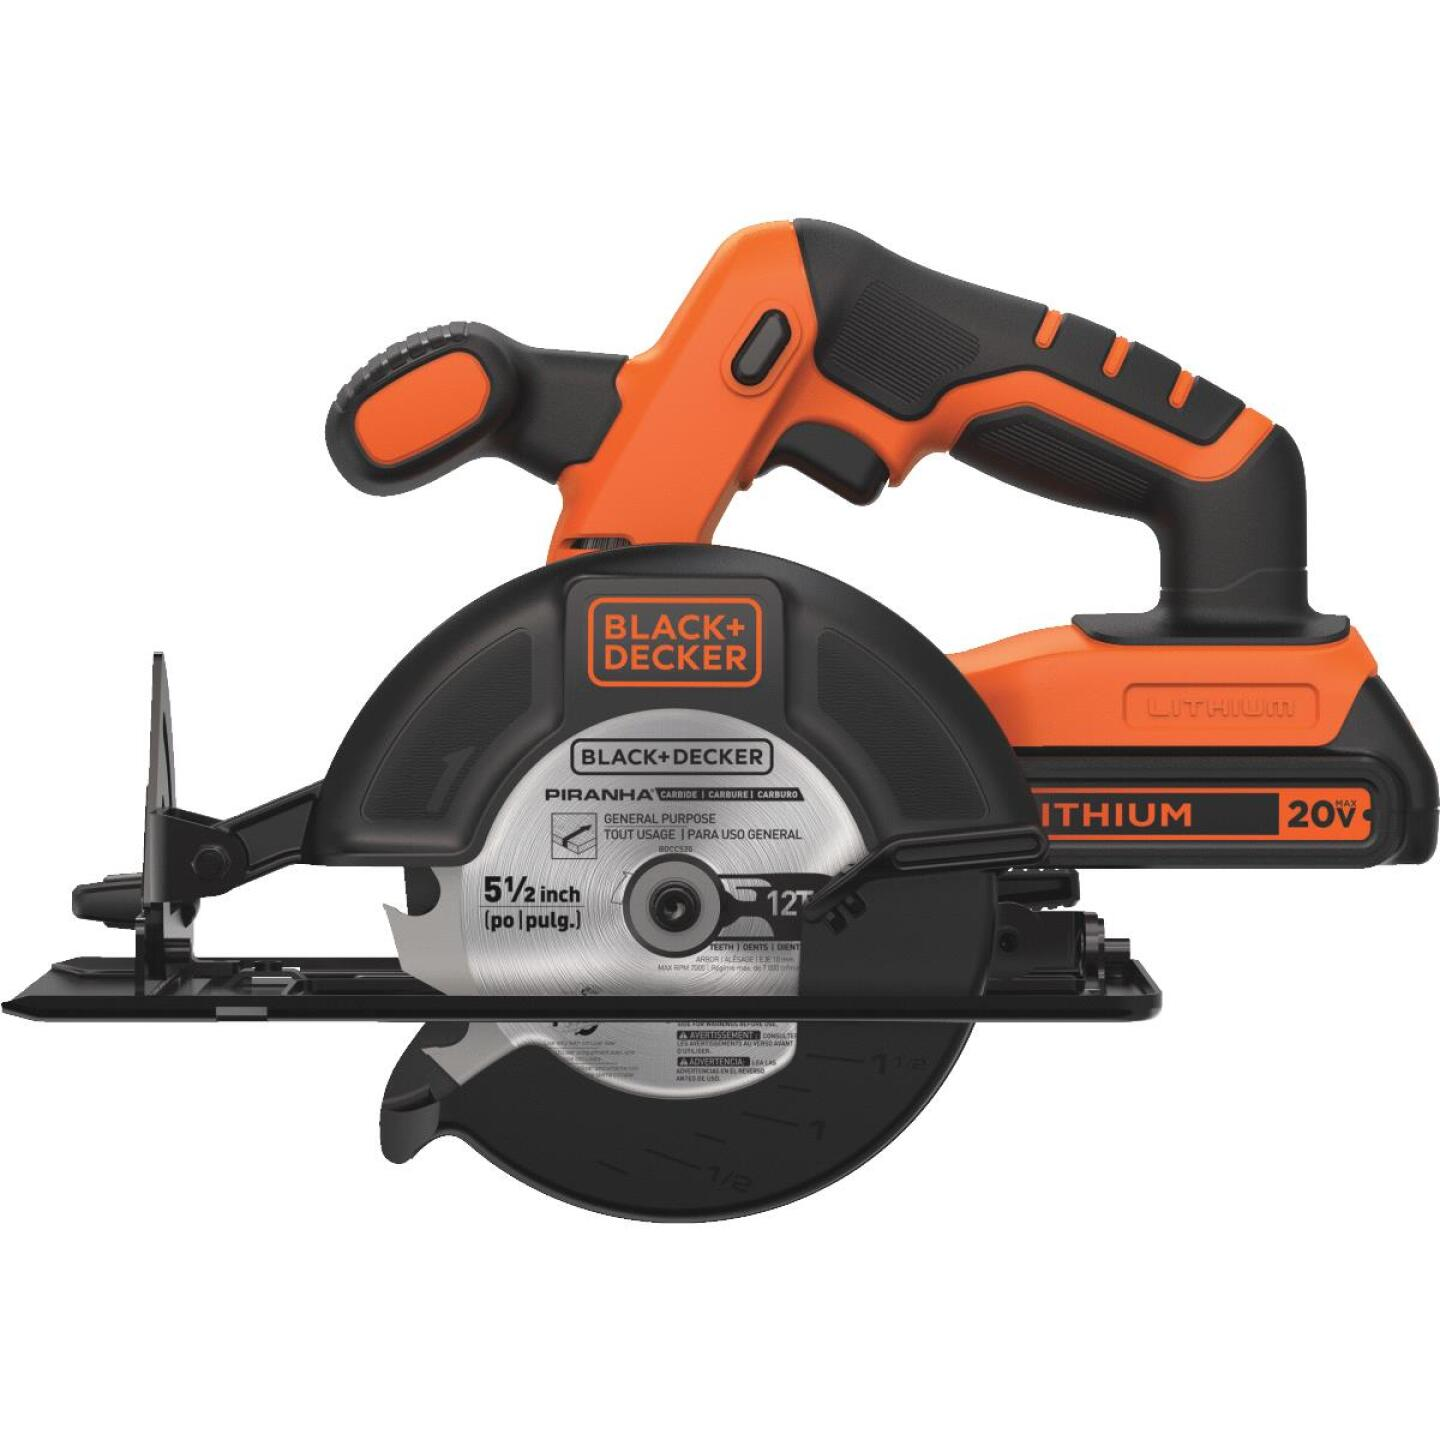 Black & Decker 20 Volt MAX Lithium-Ion 5-1/2 In. Cordless Circular Saw Kit Image 4